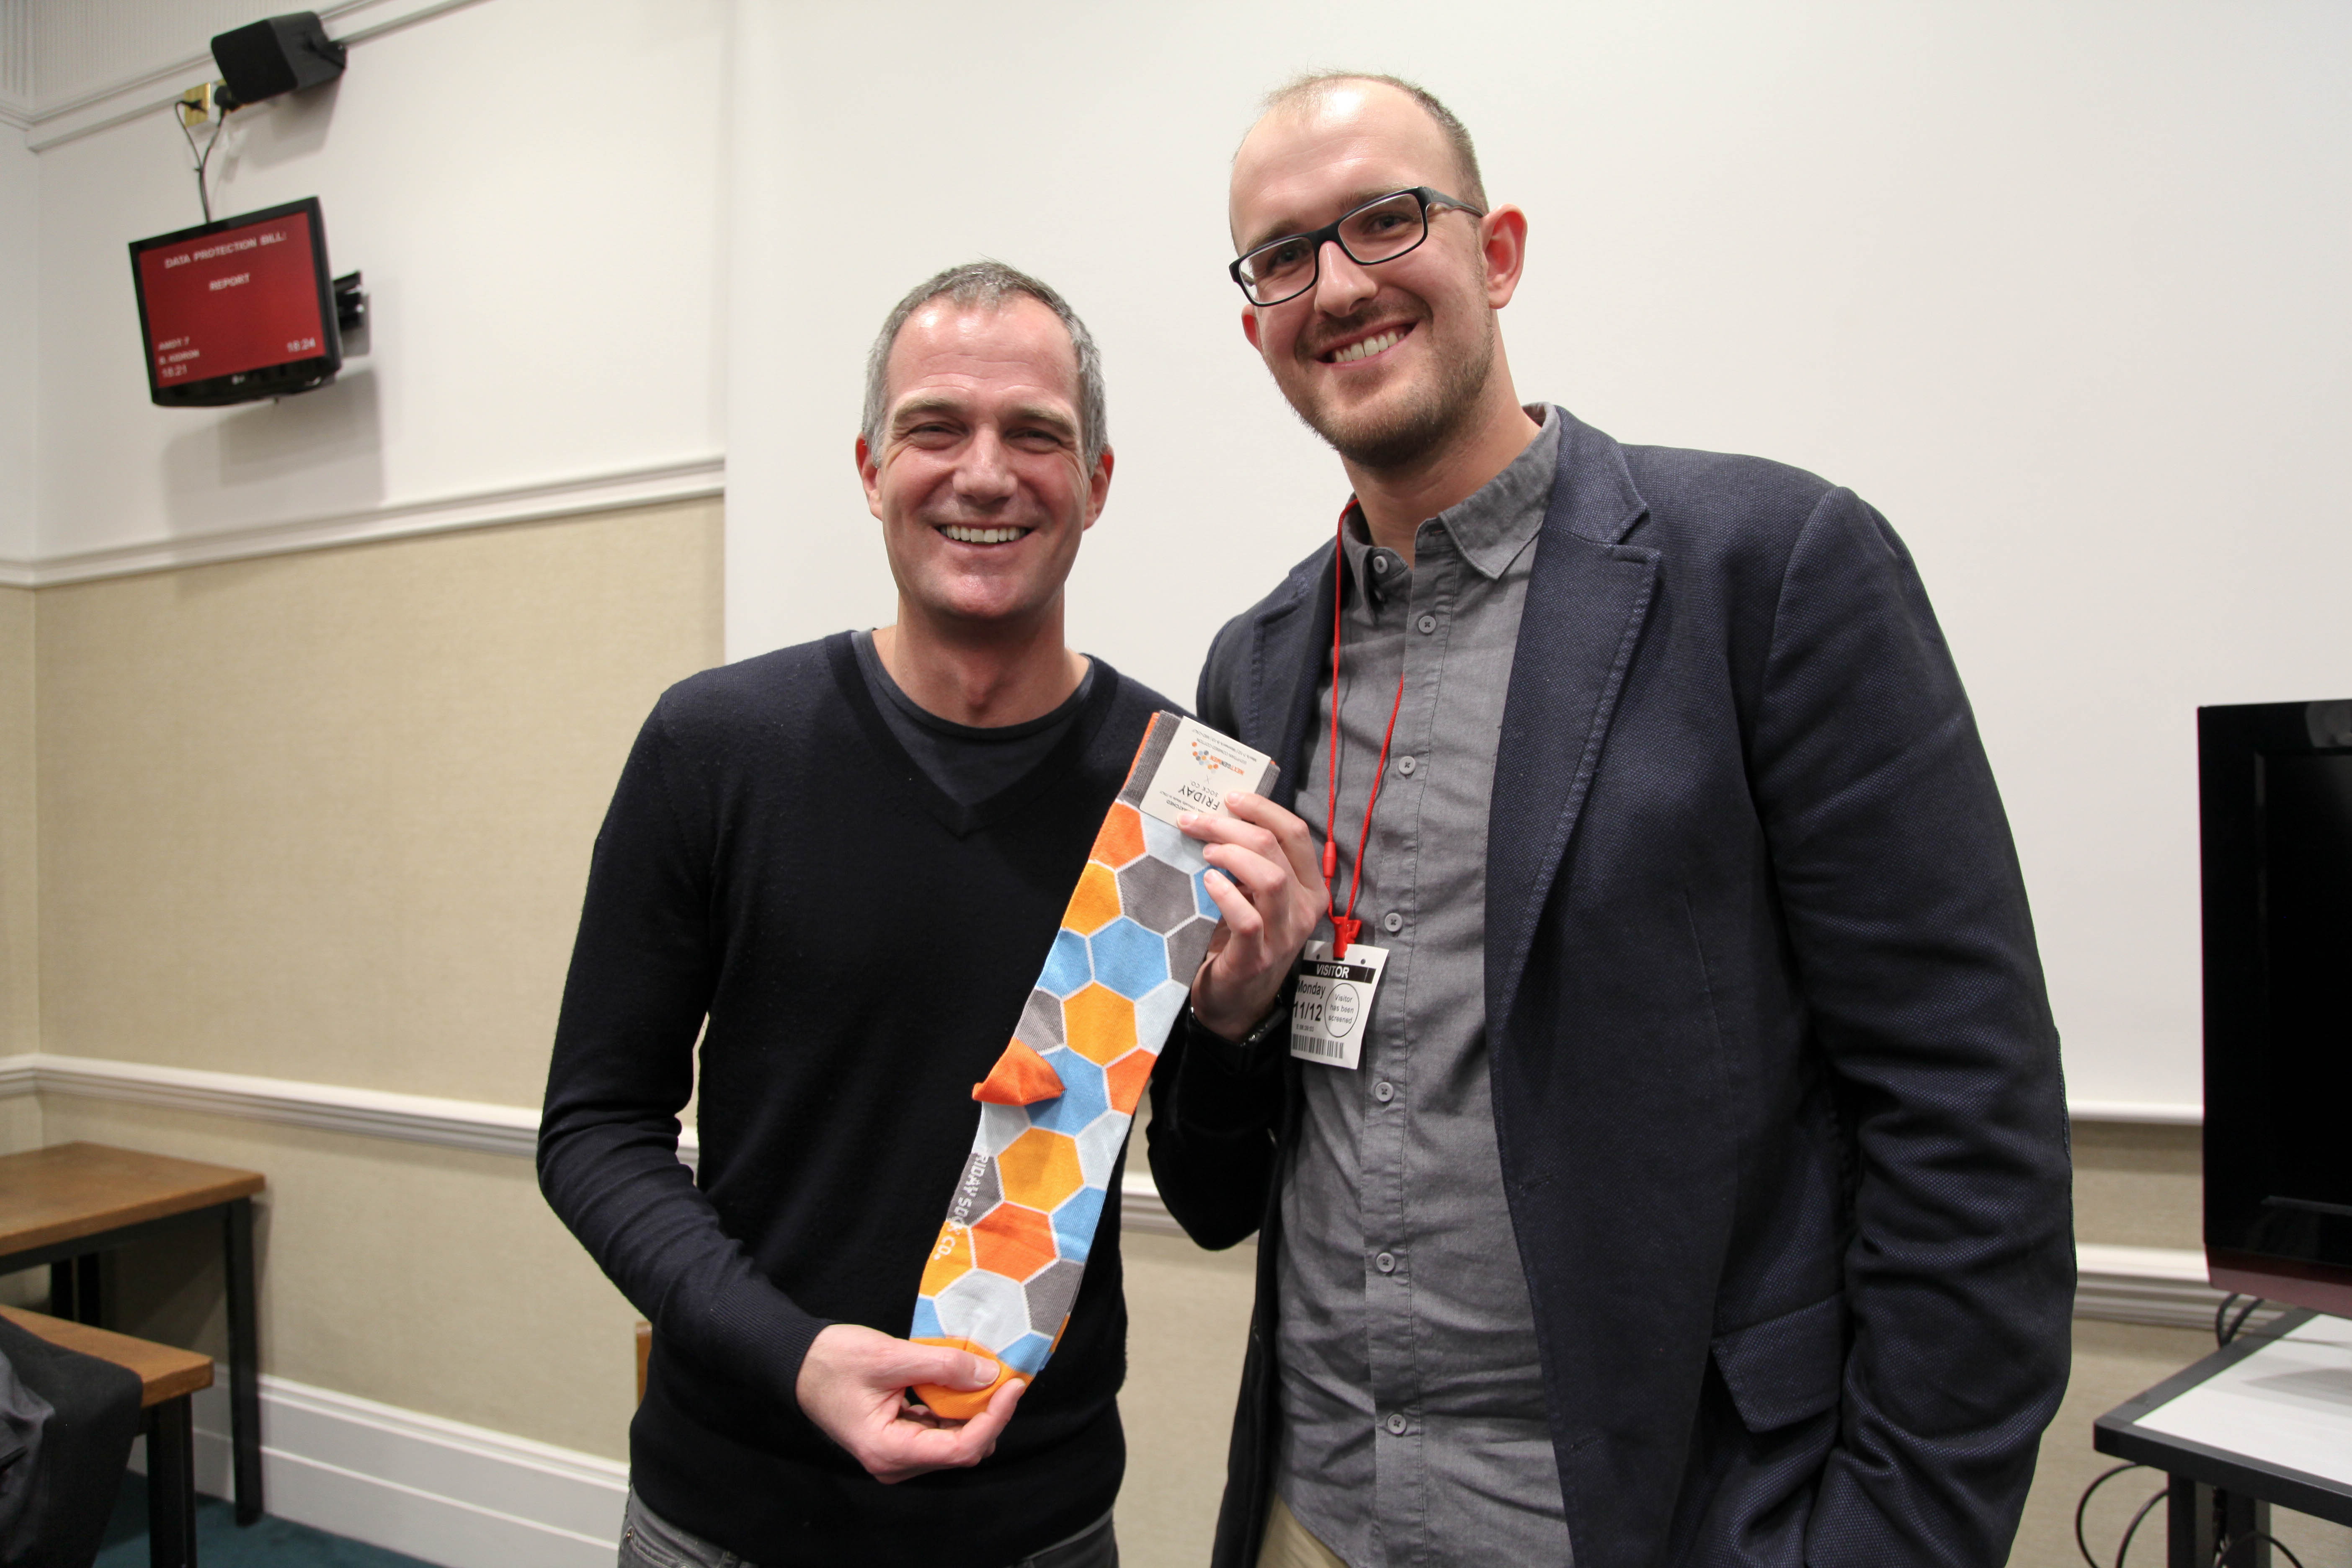 Jake Stika presented Dr Peter Kyle MP with a gift from a Canadian social enterprise during a meeting in Parliament between Dr Kyle and an international delegation of Active Citizens © Helen Clifton.